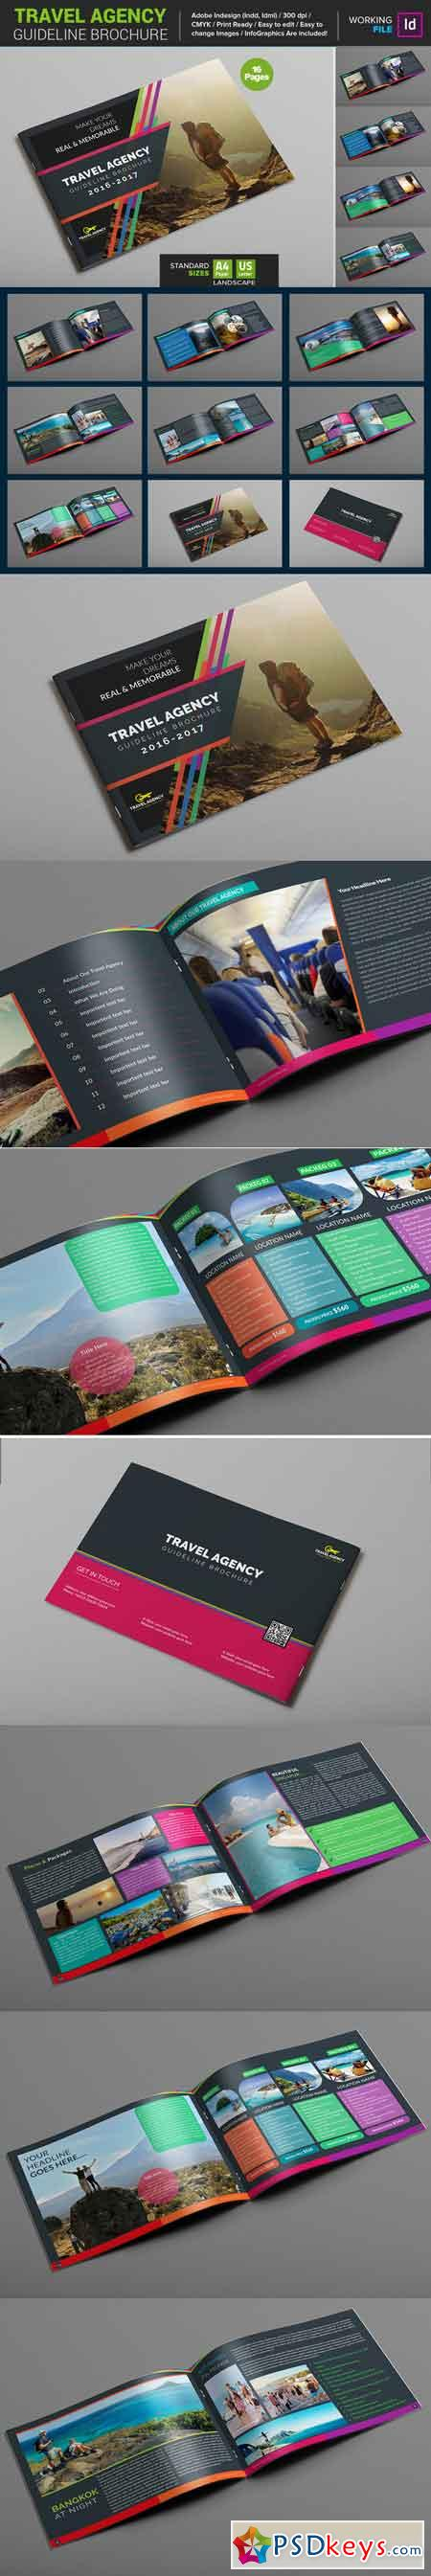 Travel Agency Guide Brochure 671212